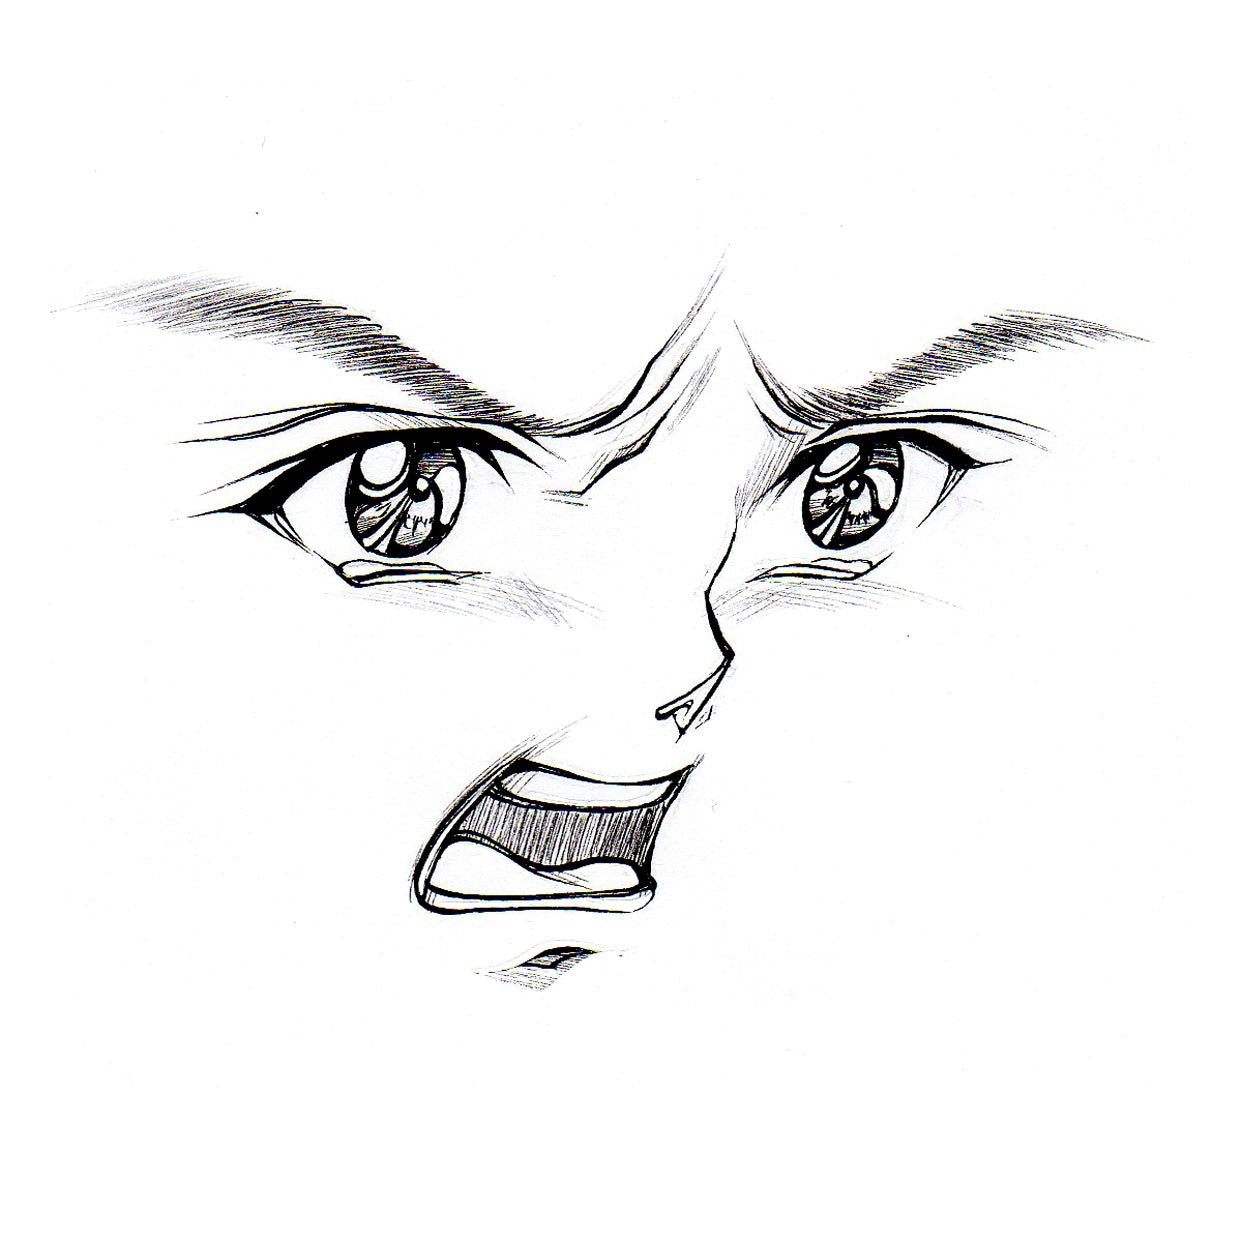 It's just a picture of Dynamic Angry Mouth Drawing